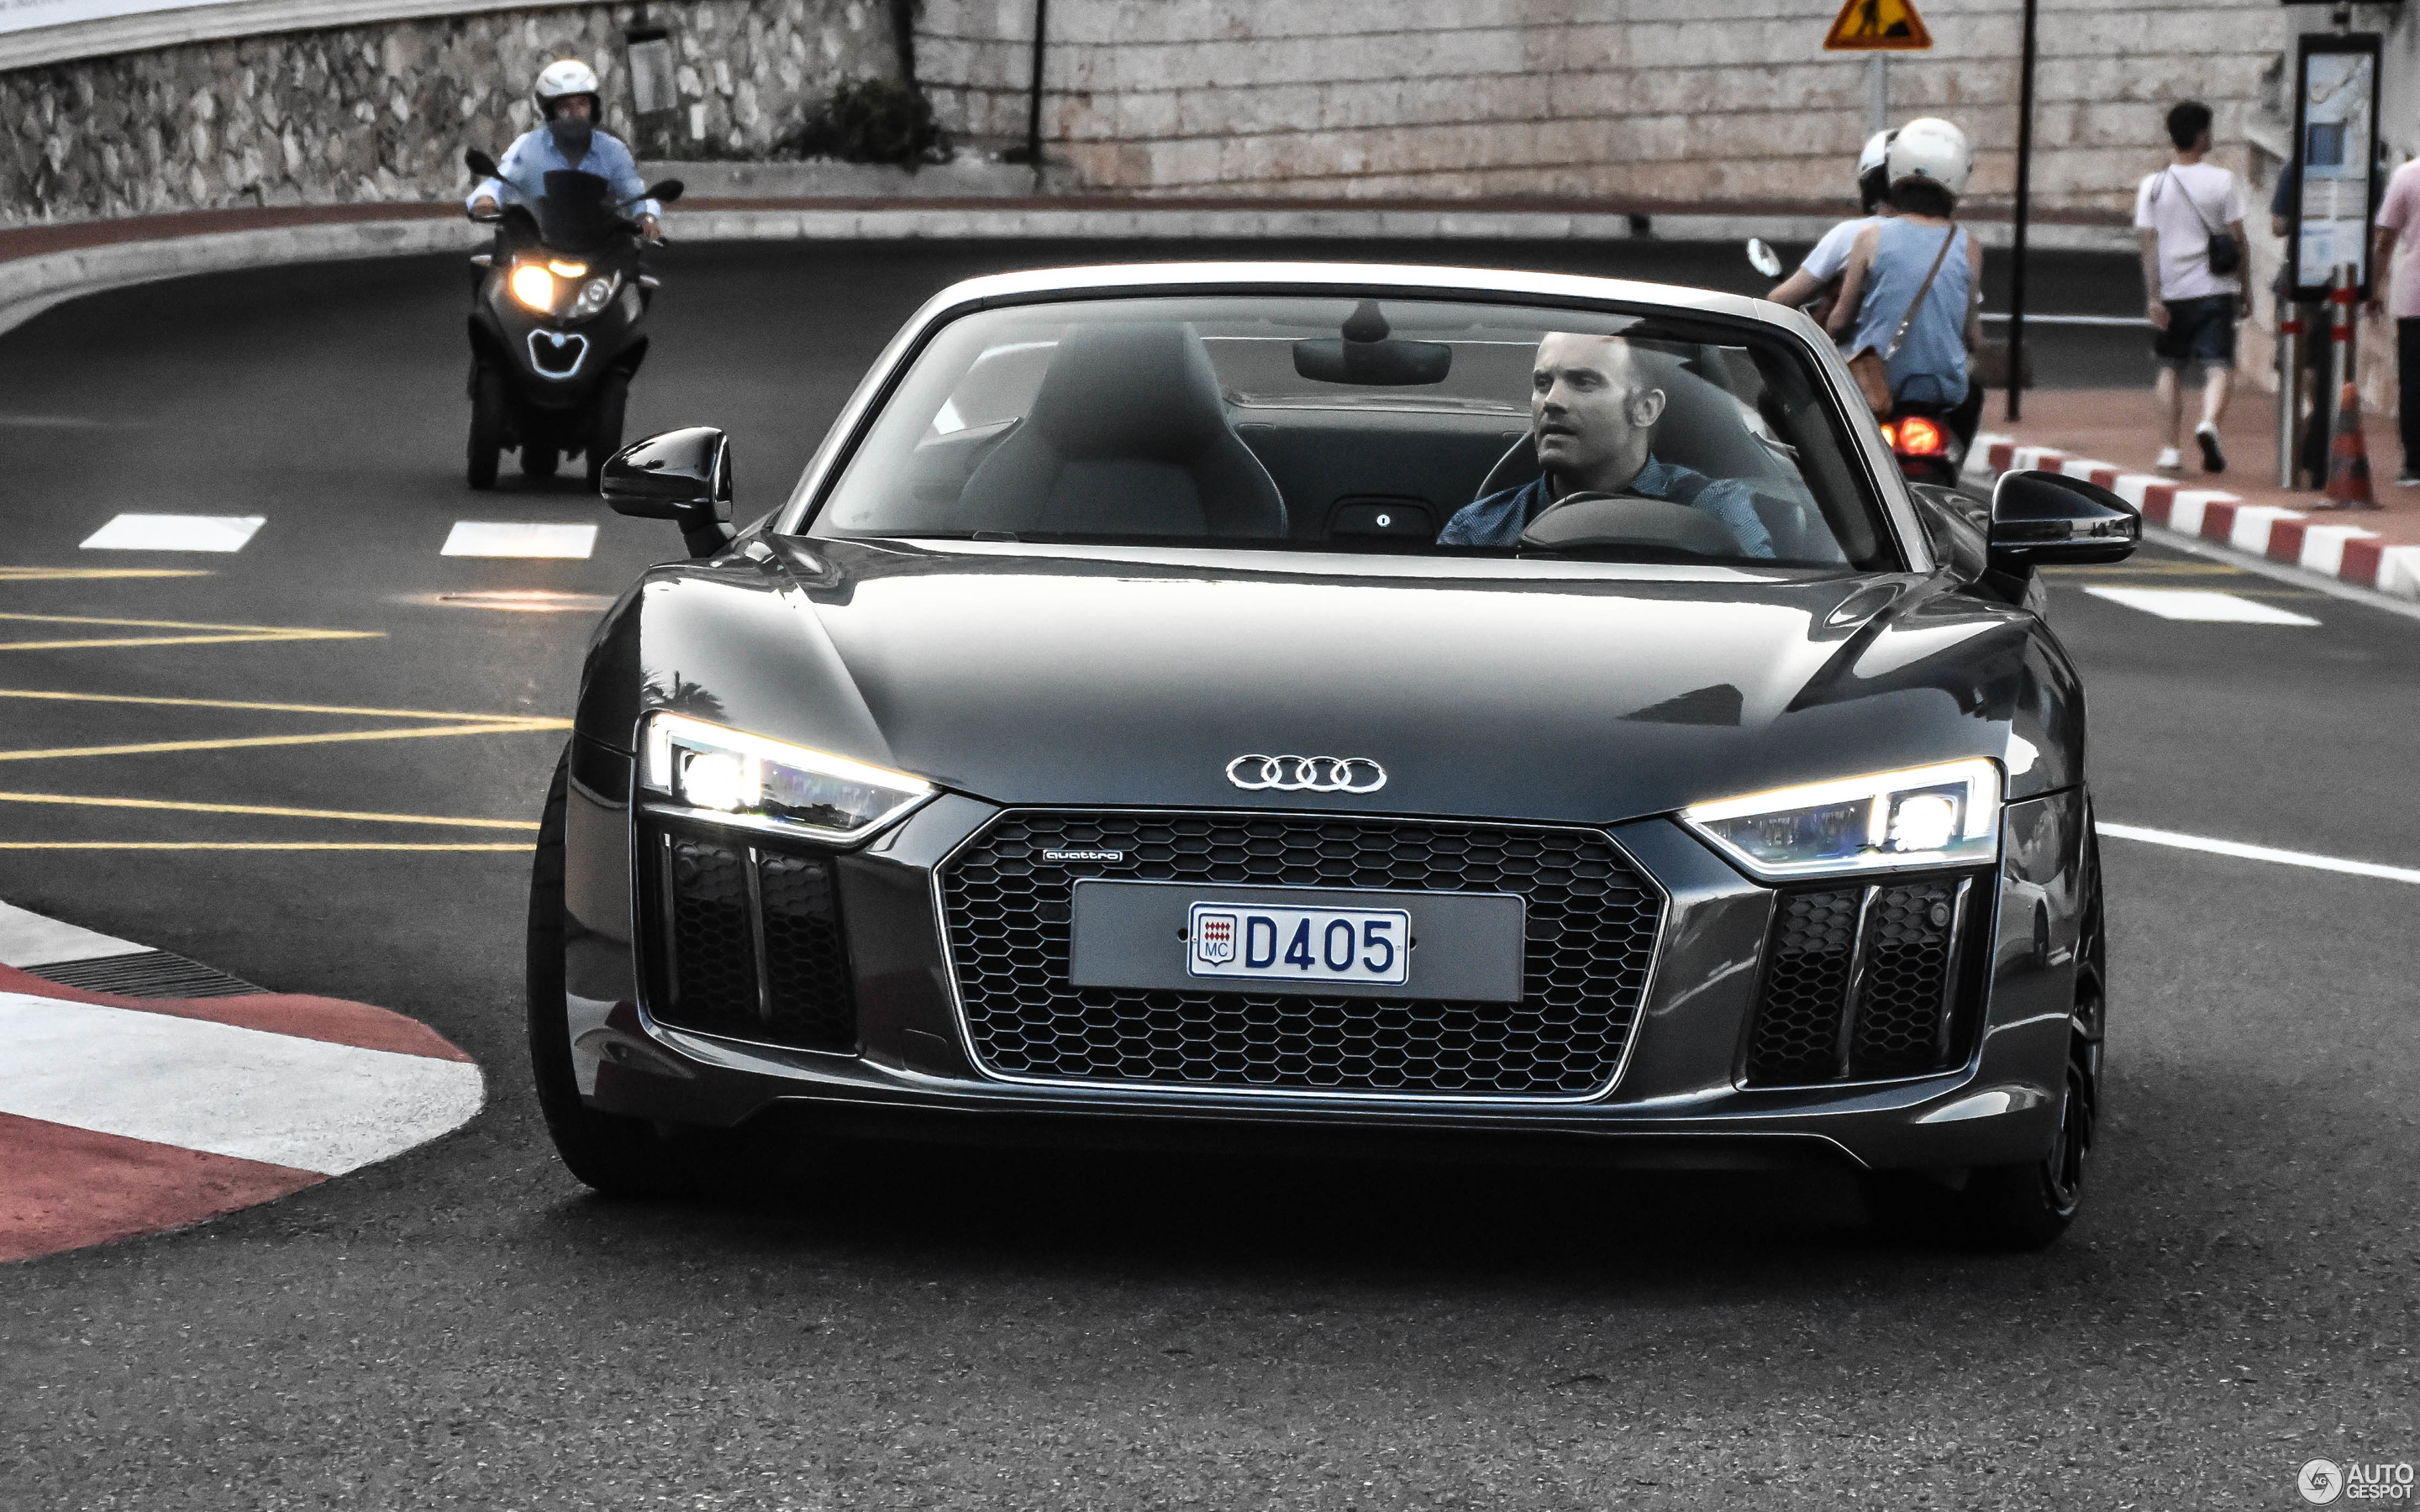 Audi R8 V10 Spyder 2016 24 November 2017 Autogespot